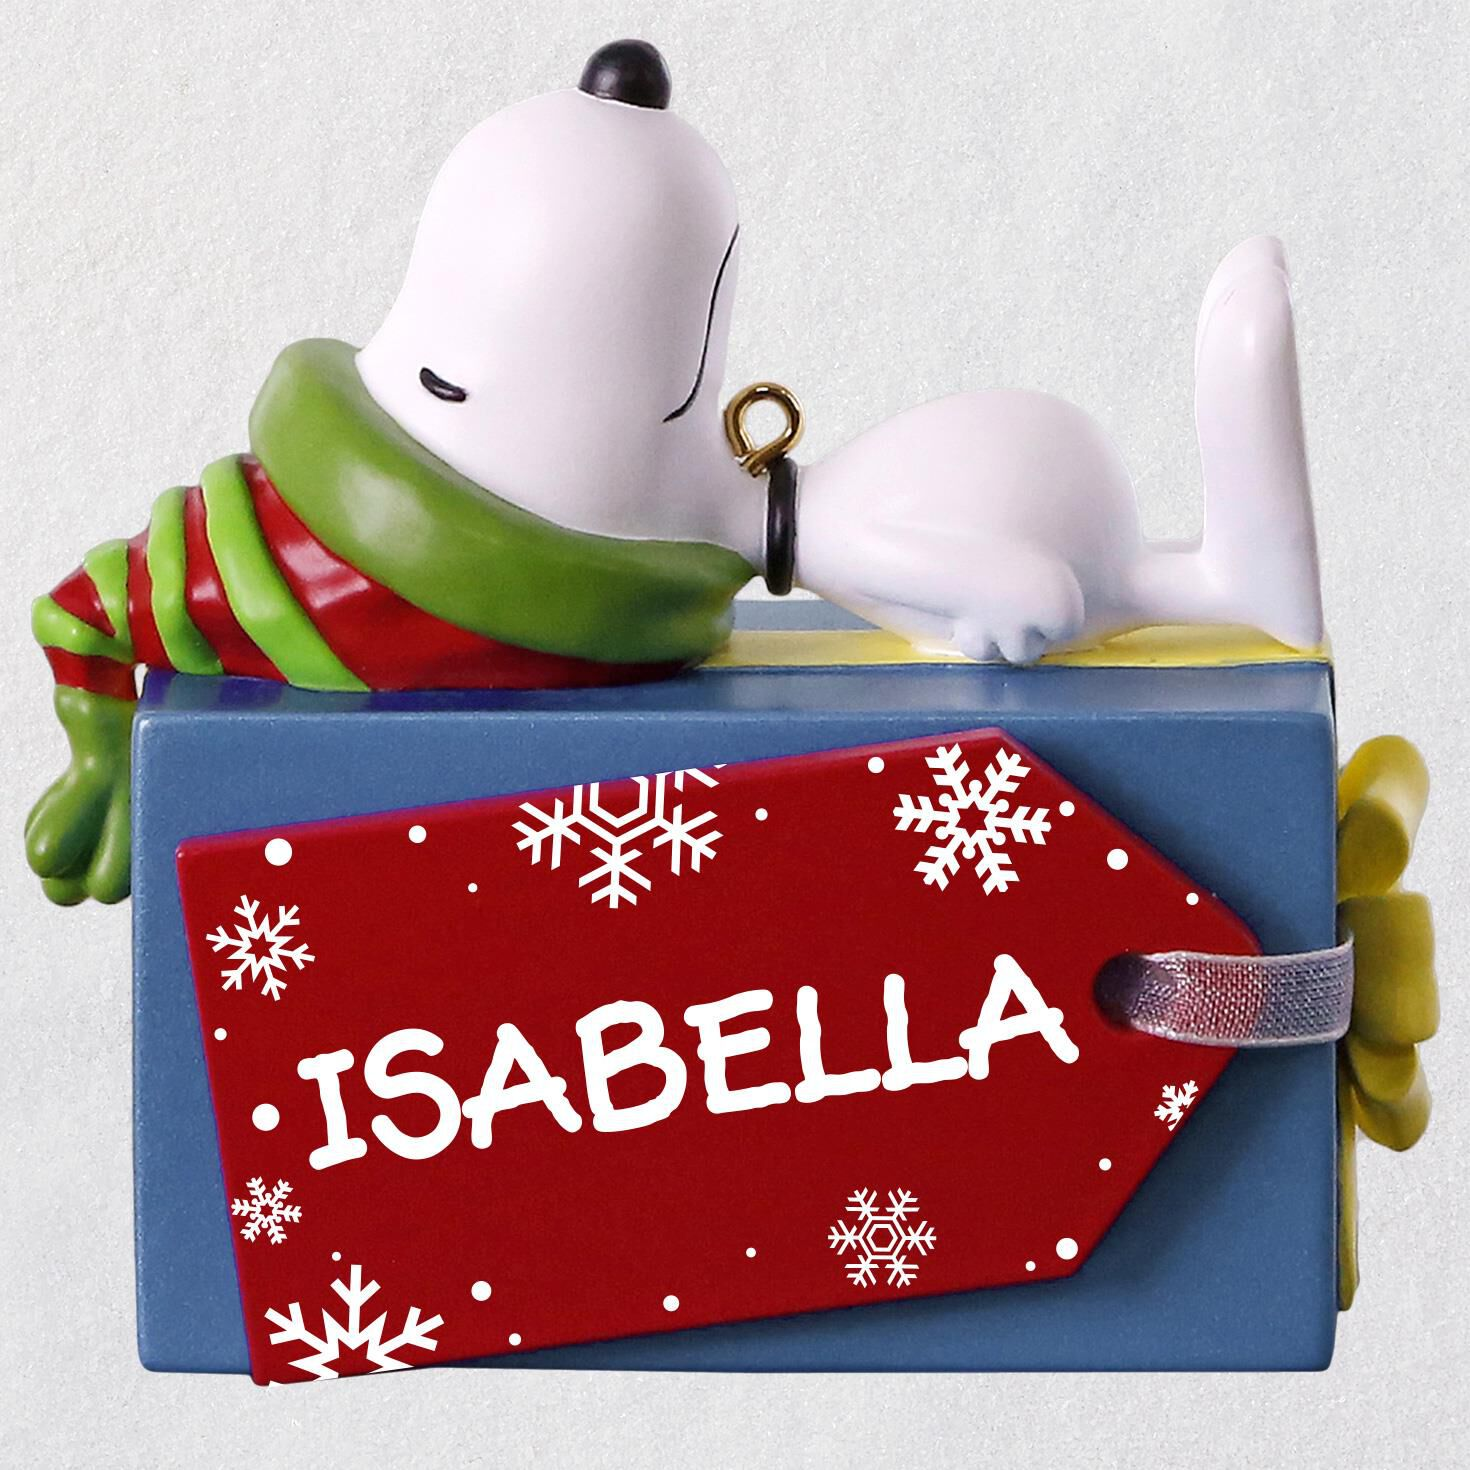 peanuts snoopy christmas present personalized ornament personalized ornaments hallmark - Snoopy Christmas